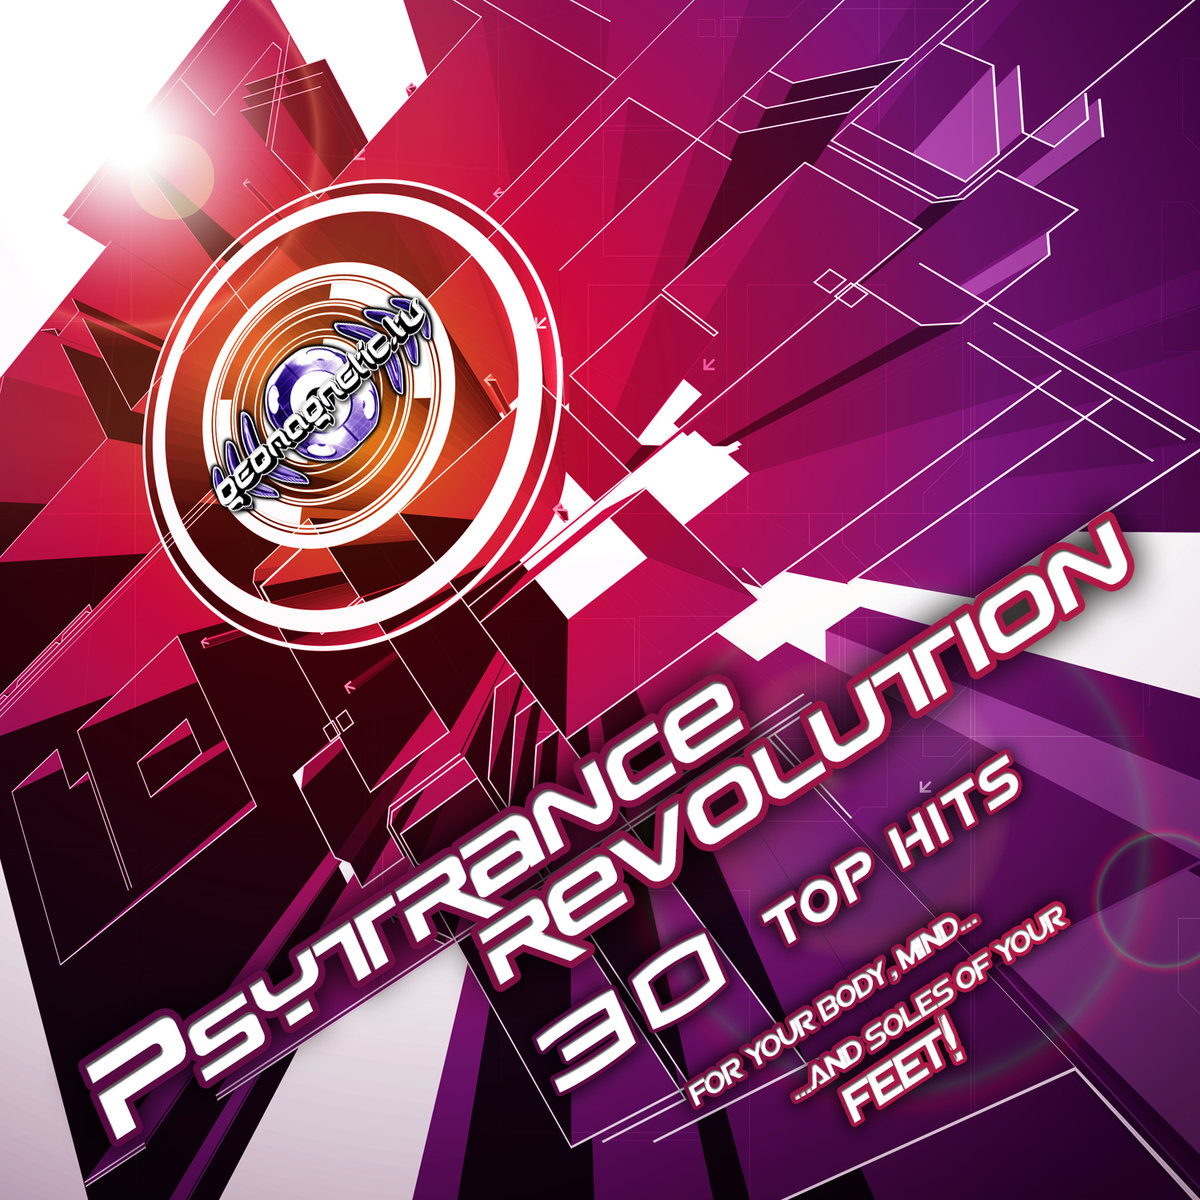 Spiritcat - Foggy Vision @ 'Various Artists - Psytrance Revolution (30 Top Hits)' album (electronic, goa)